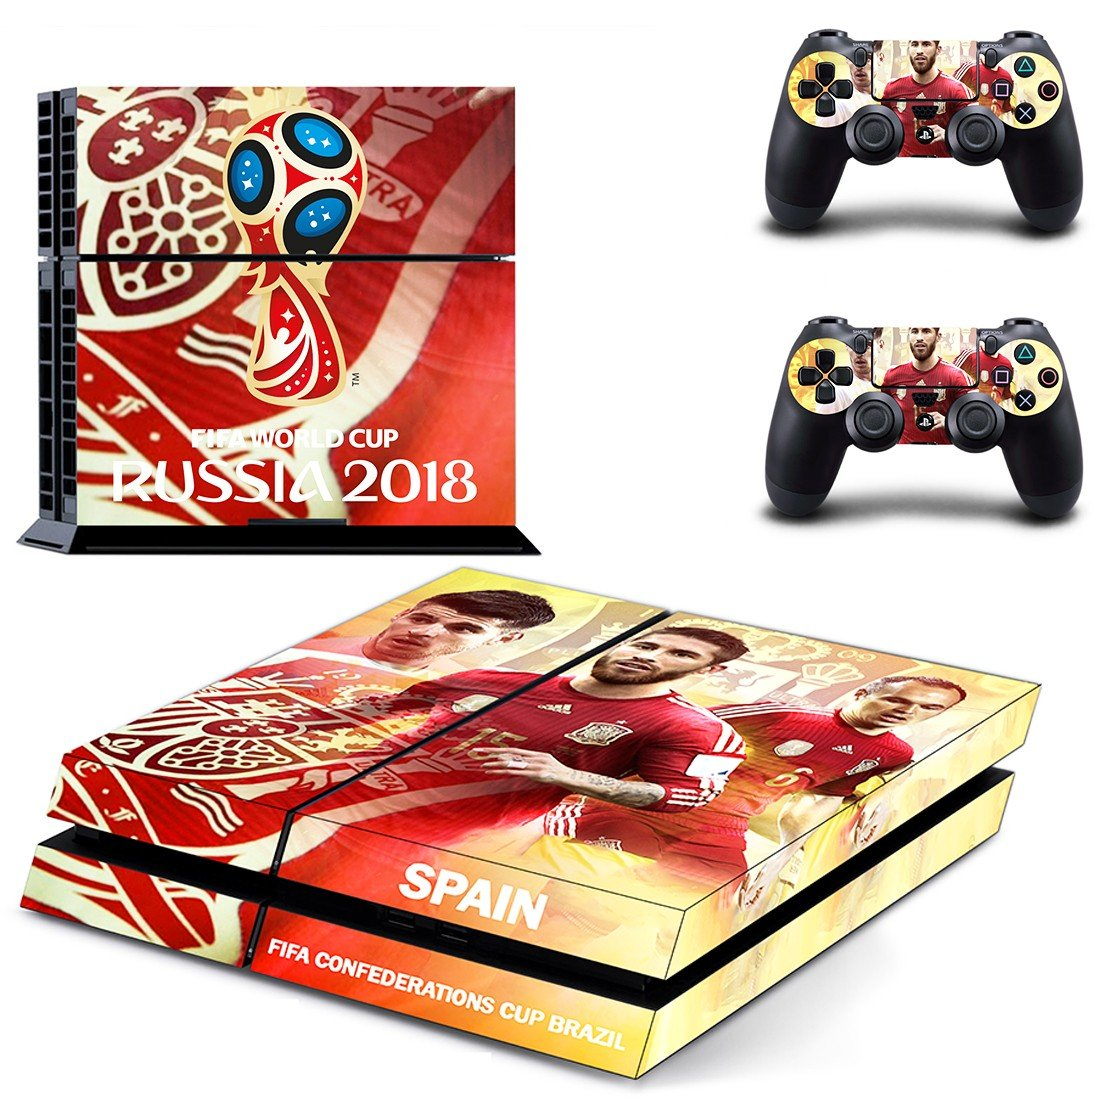 2018 FIFA World Cup Spain decal skin sticker for PS4 console and controllers